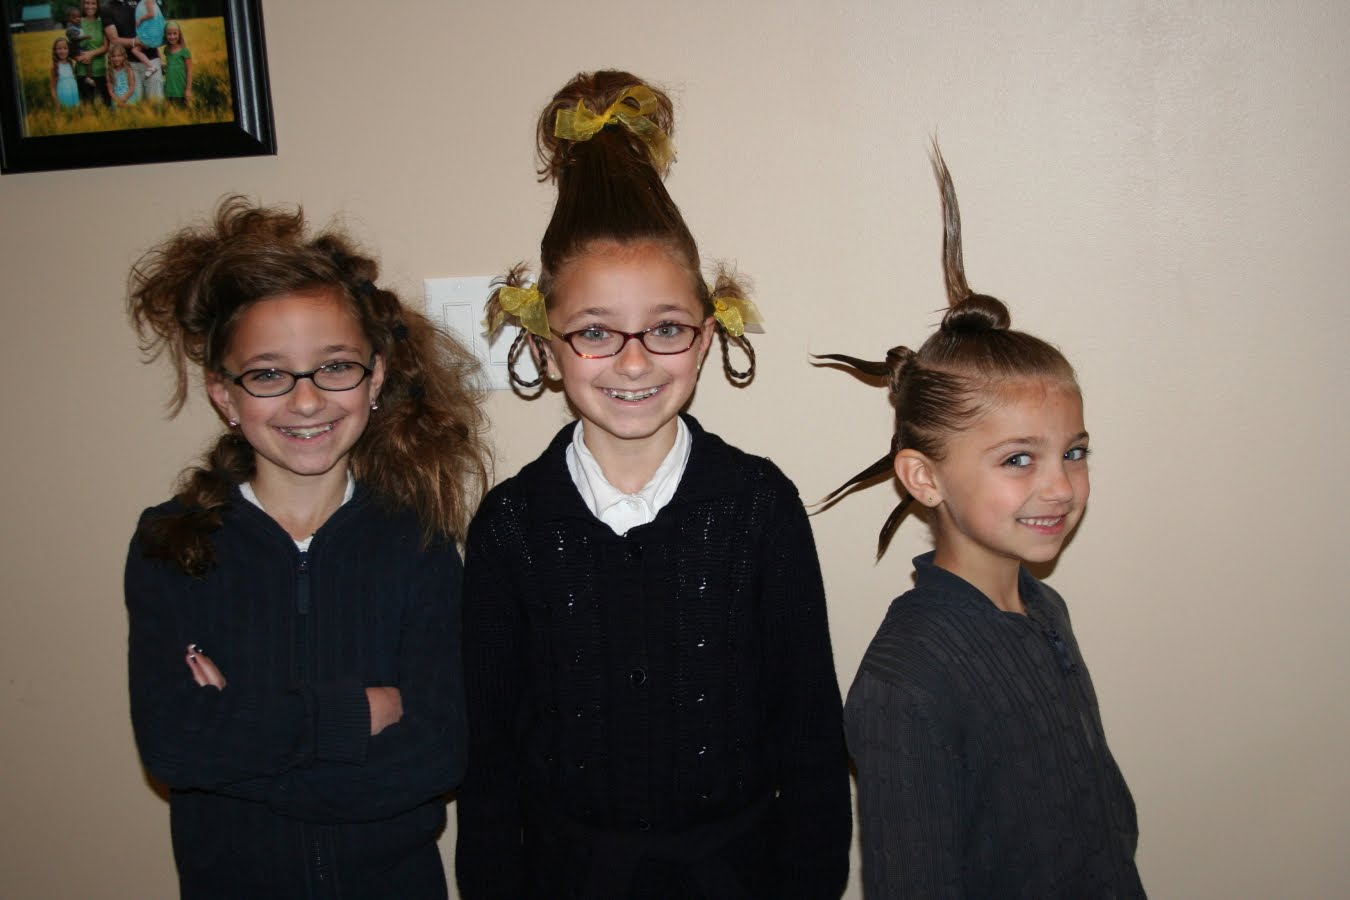 Our Crazy Hair Day…